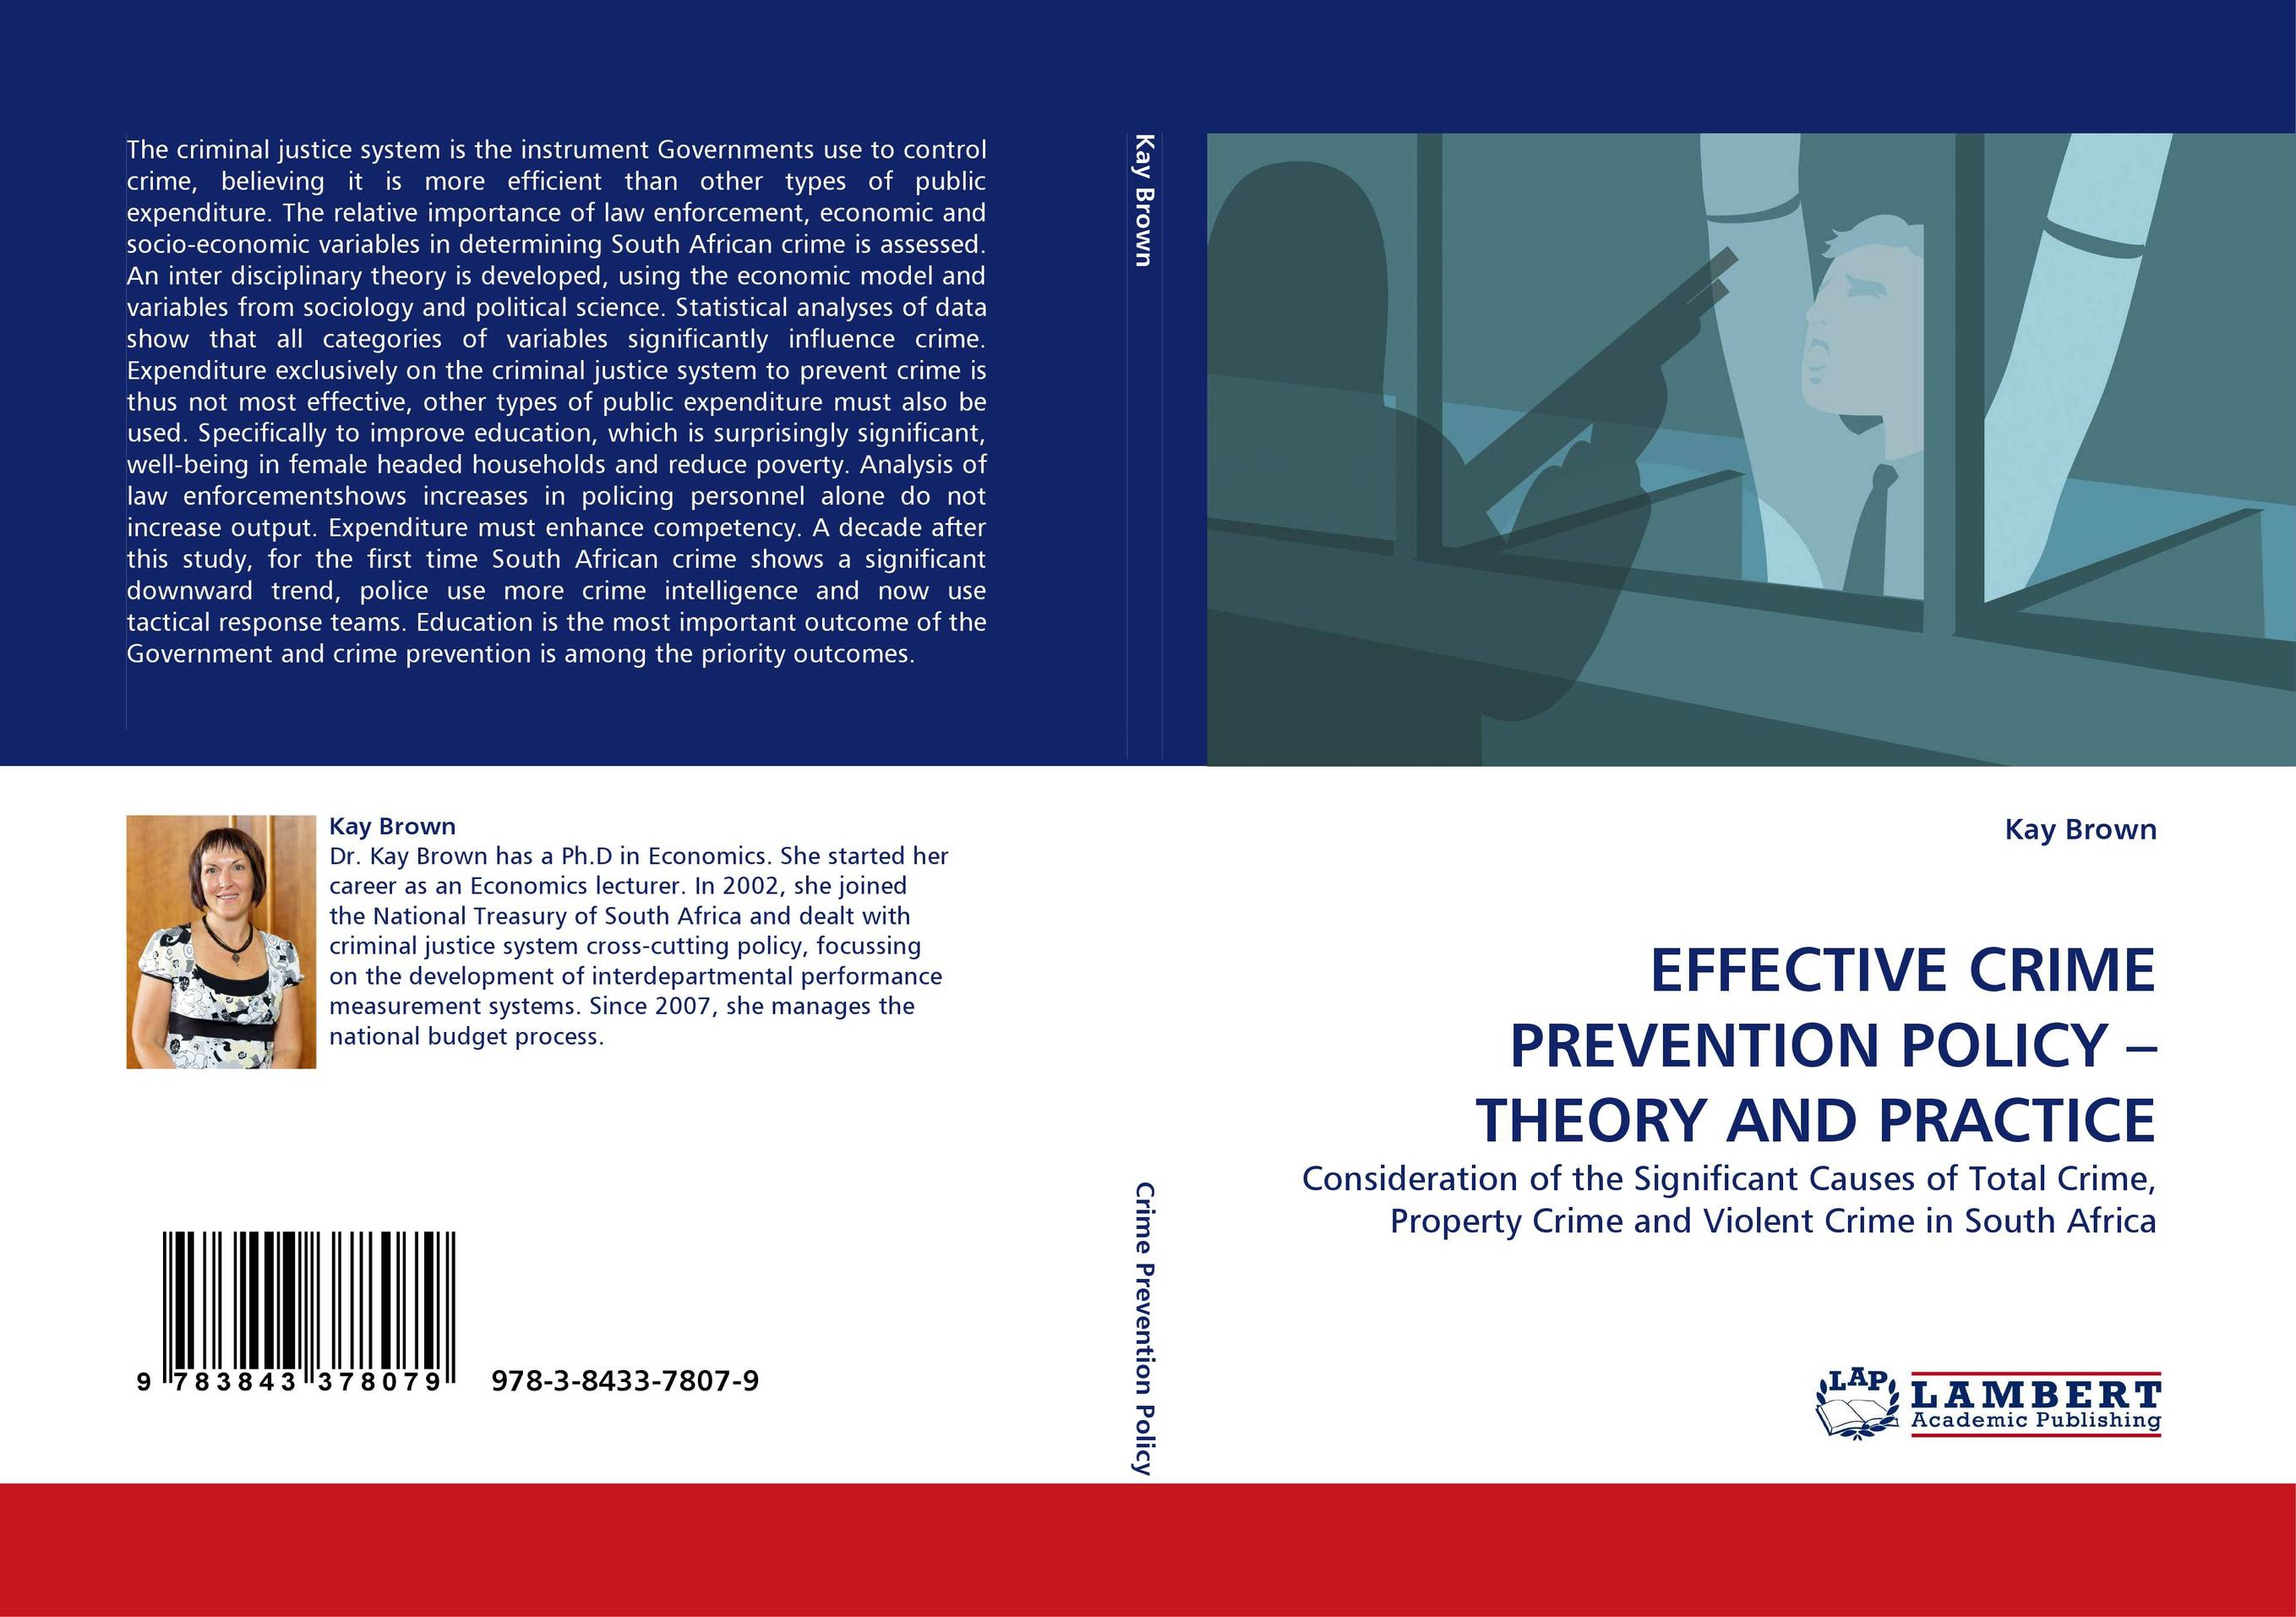 improving crime prevention knowledge and Resolution 2009/25 improving the collection, reporting and analysis of data to enhance knowledge on trends in specific areas of crime the economic and social council.